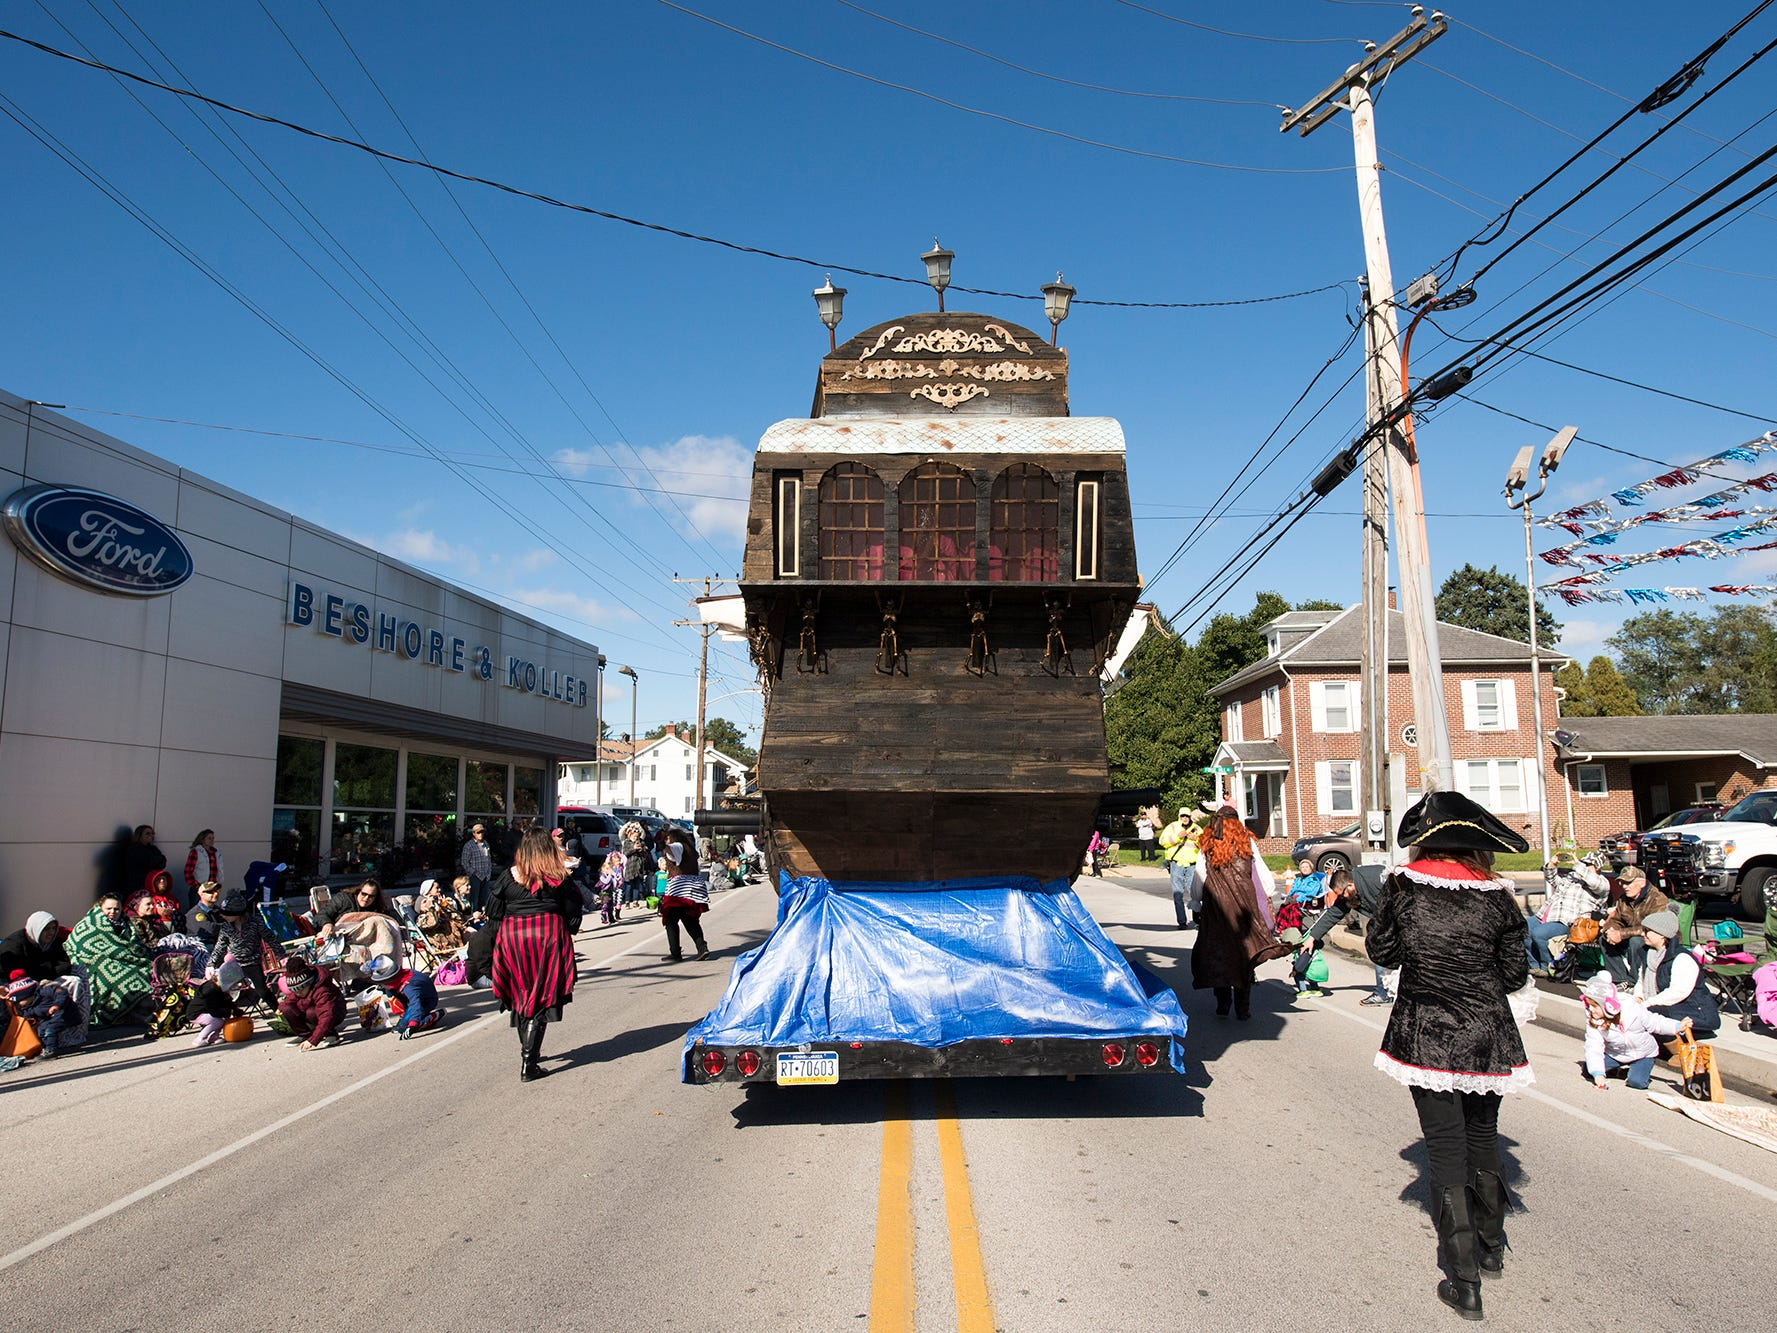 The back of A.J. Rosbrook's pirate ship is seen as it heads north on Main Street in Manchester during the 53rd Annual Manchester/Mt. Wolf Halloween Parade Sunday.